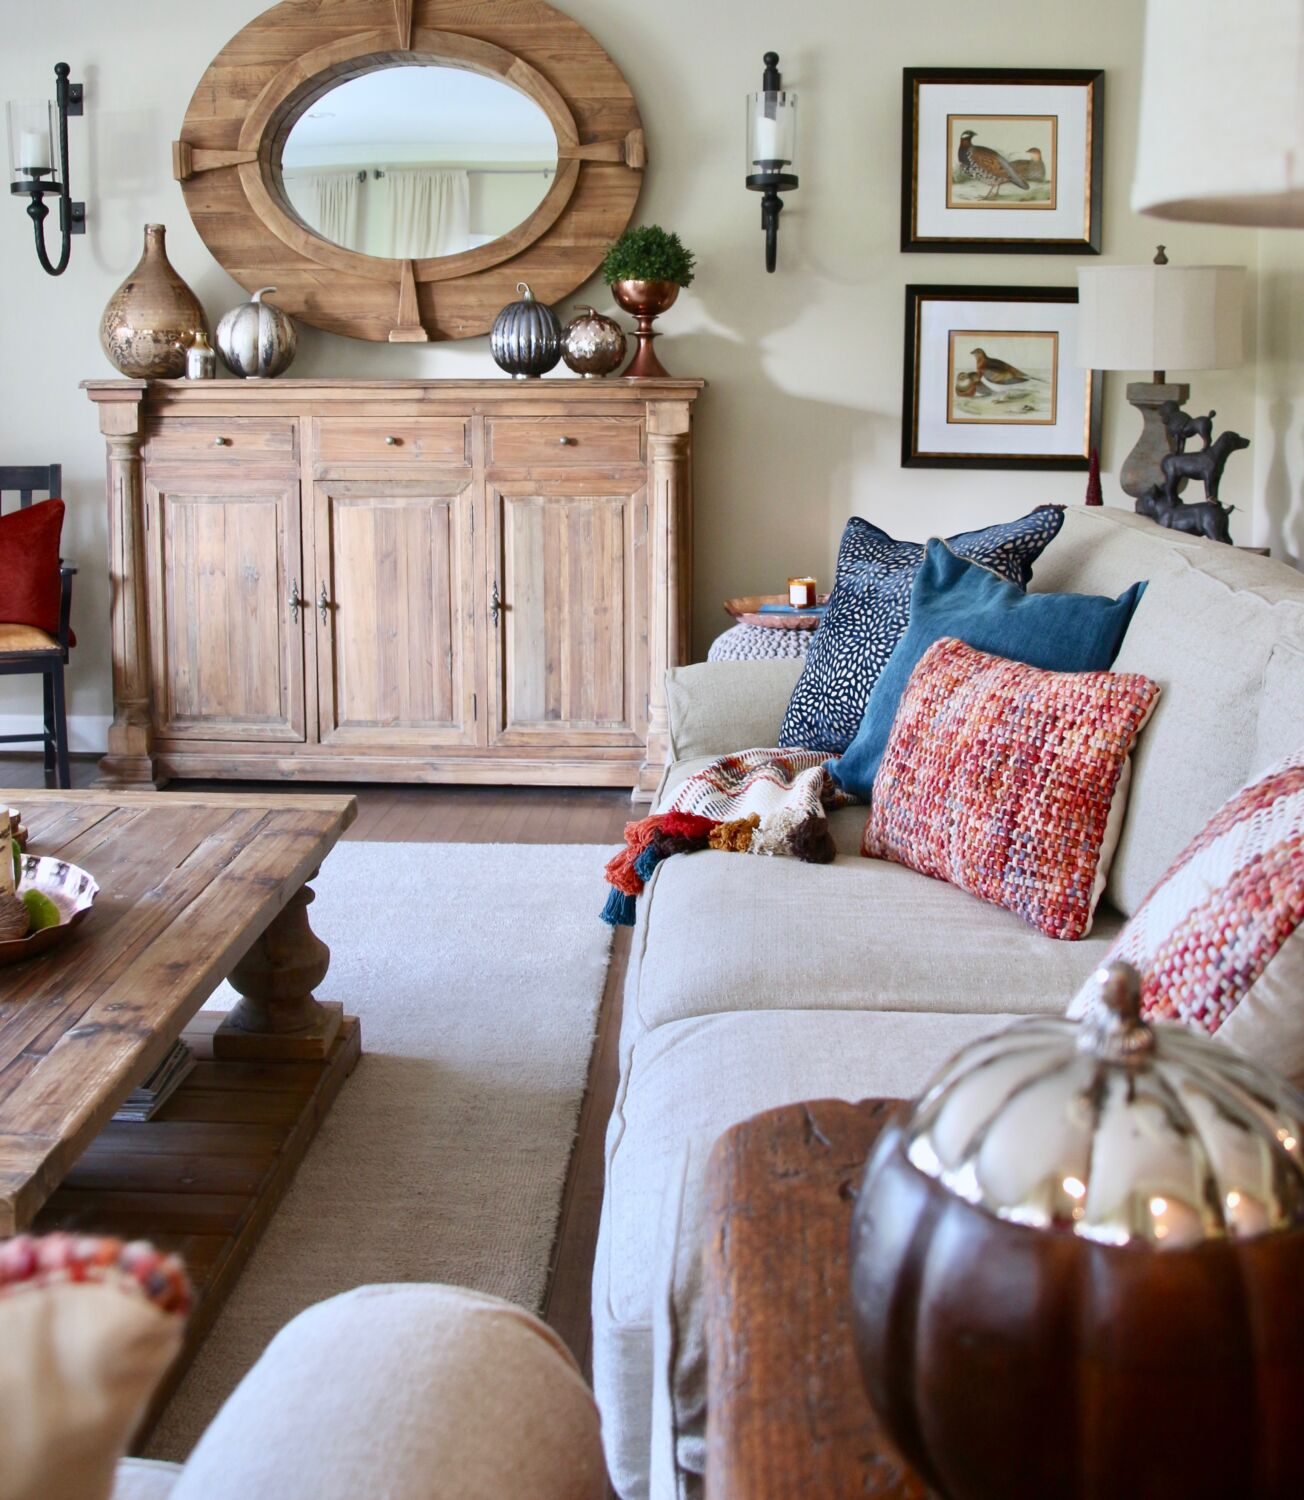 Decorating For Fall: 7 Easy Tips To Creating A Rich